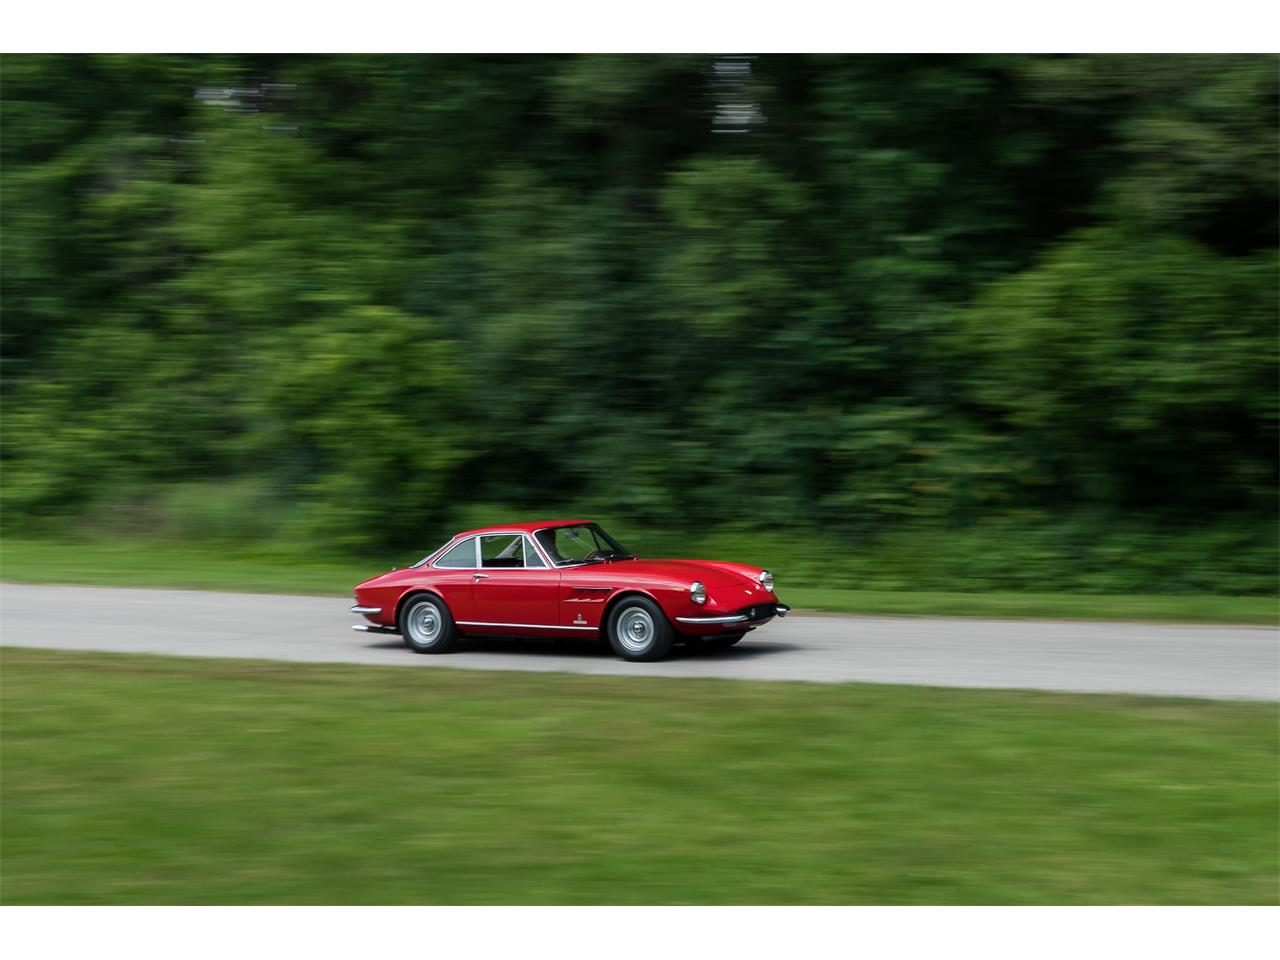 Large Picture of 1967 Ferrari 330 GTC - $650,000.00 - QNXU